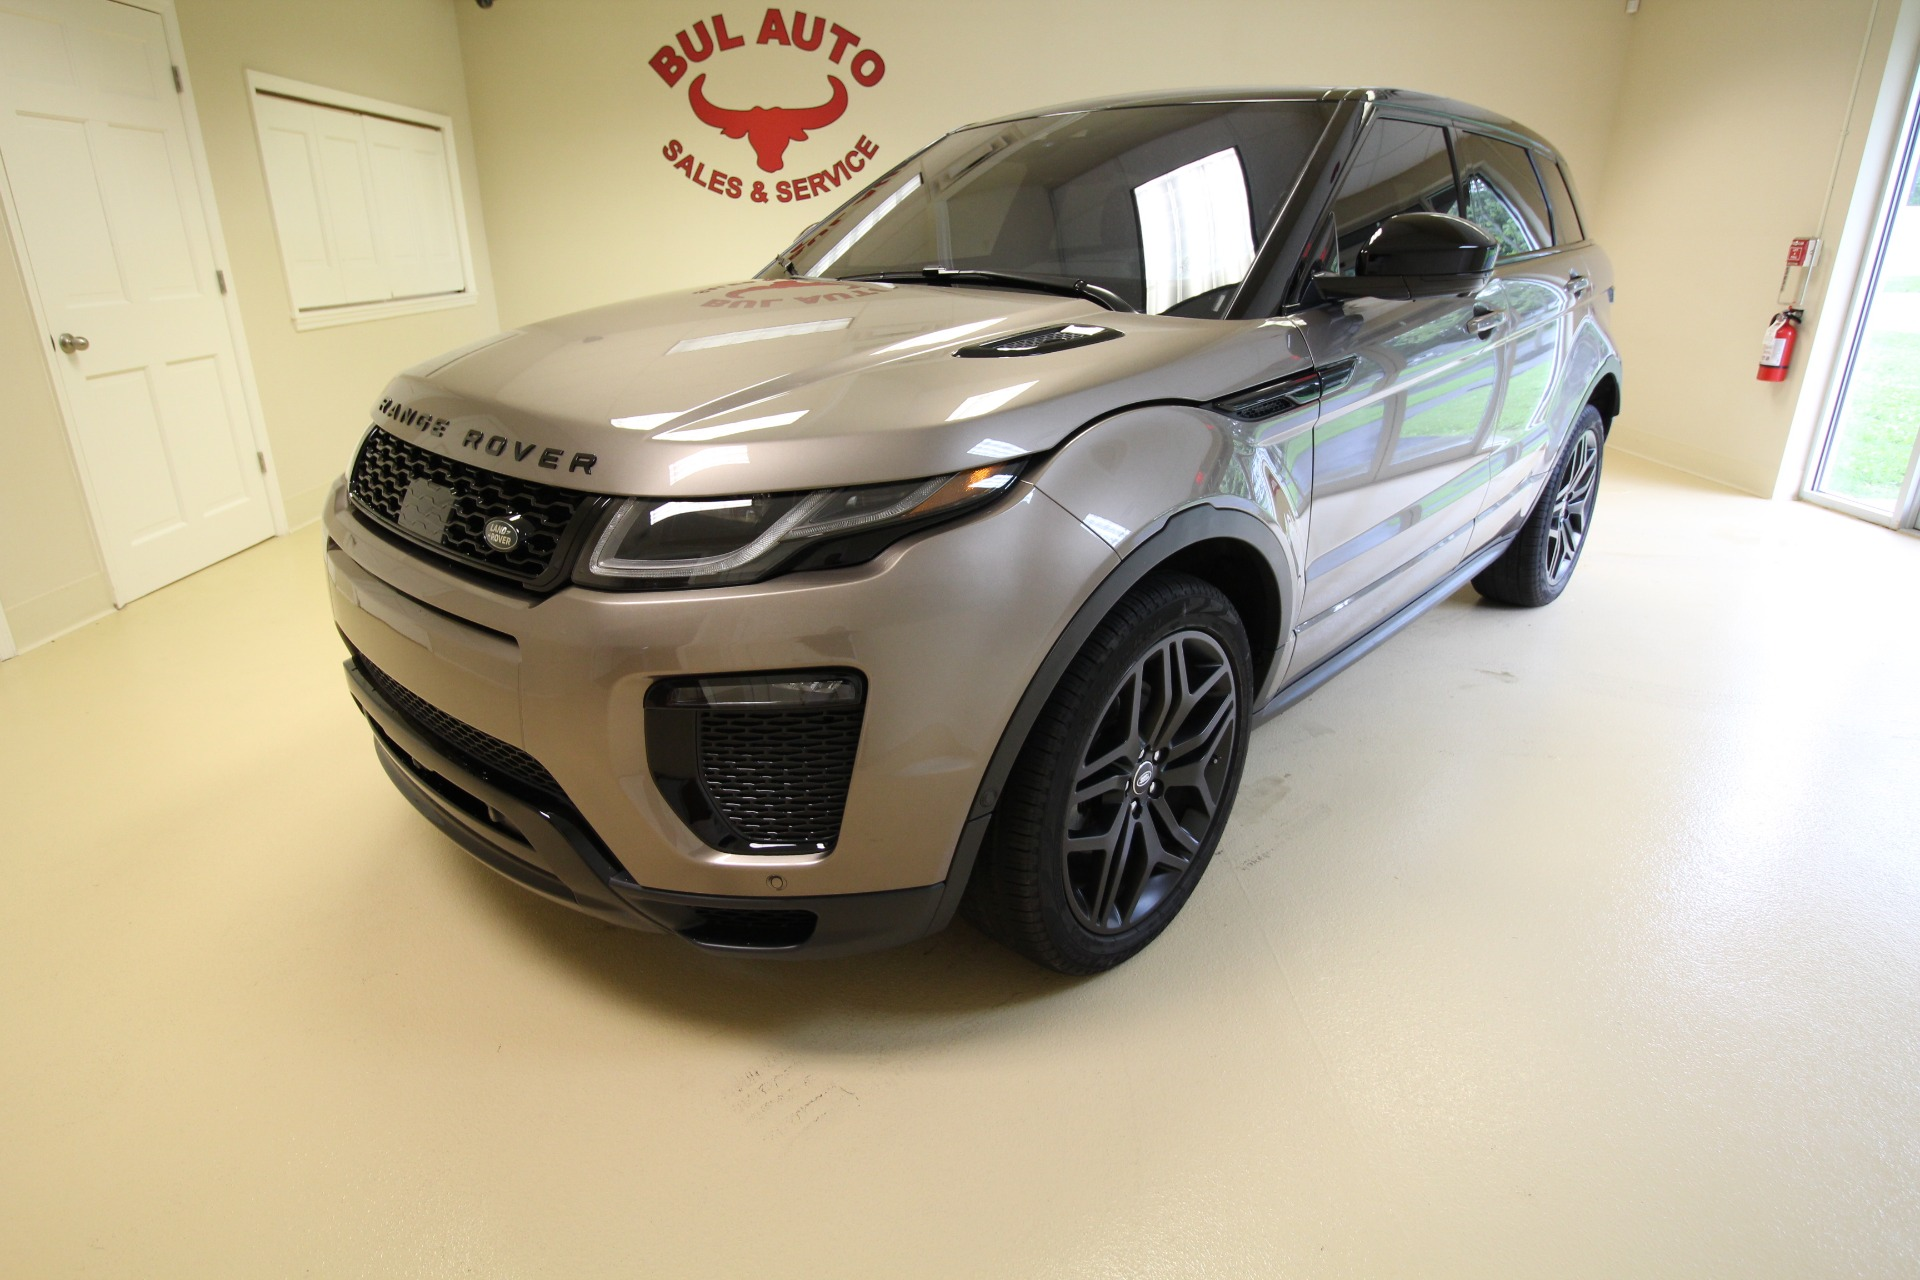 land landrover albany rover for dealers luxury sale hse new view nl side pic discovery cargurus ny cars in